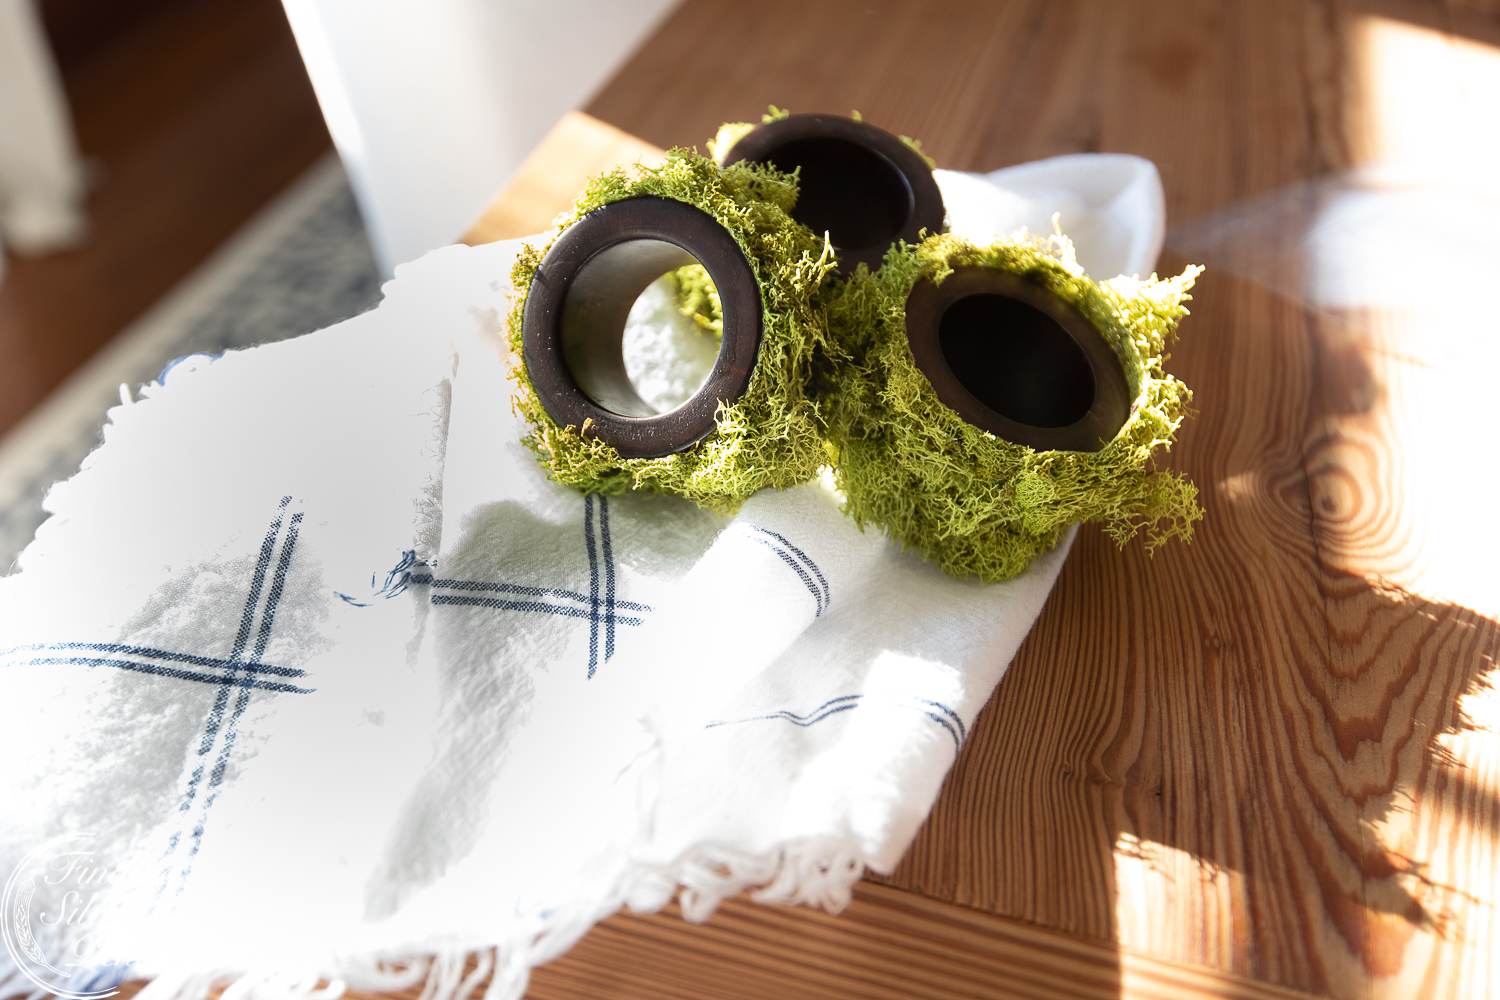 Simple wood and moss napkin holders #moss #crafts #DIYmosswreath #diymossnapkinrings #winterdecorating #hygge #cozyliving